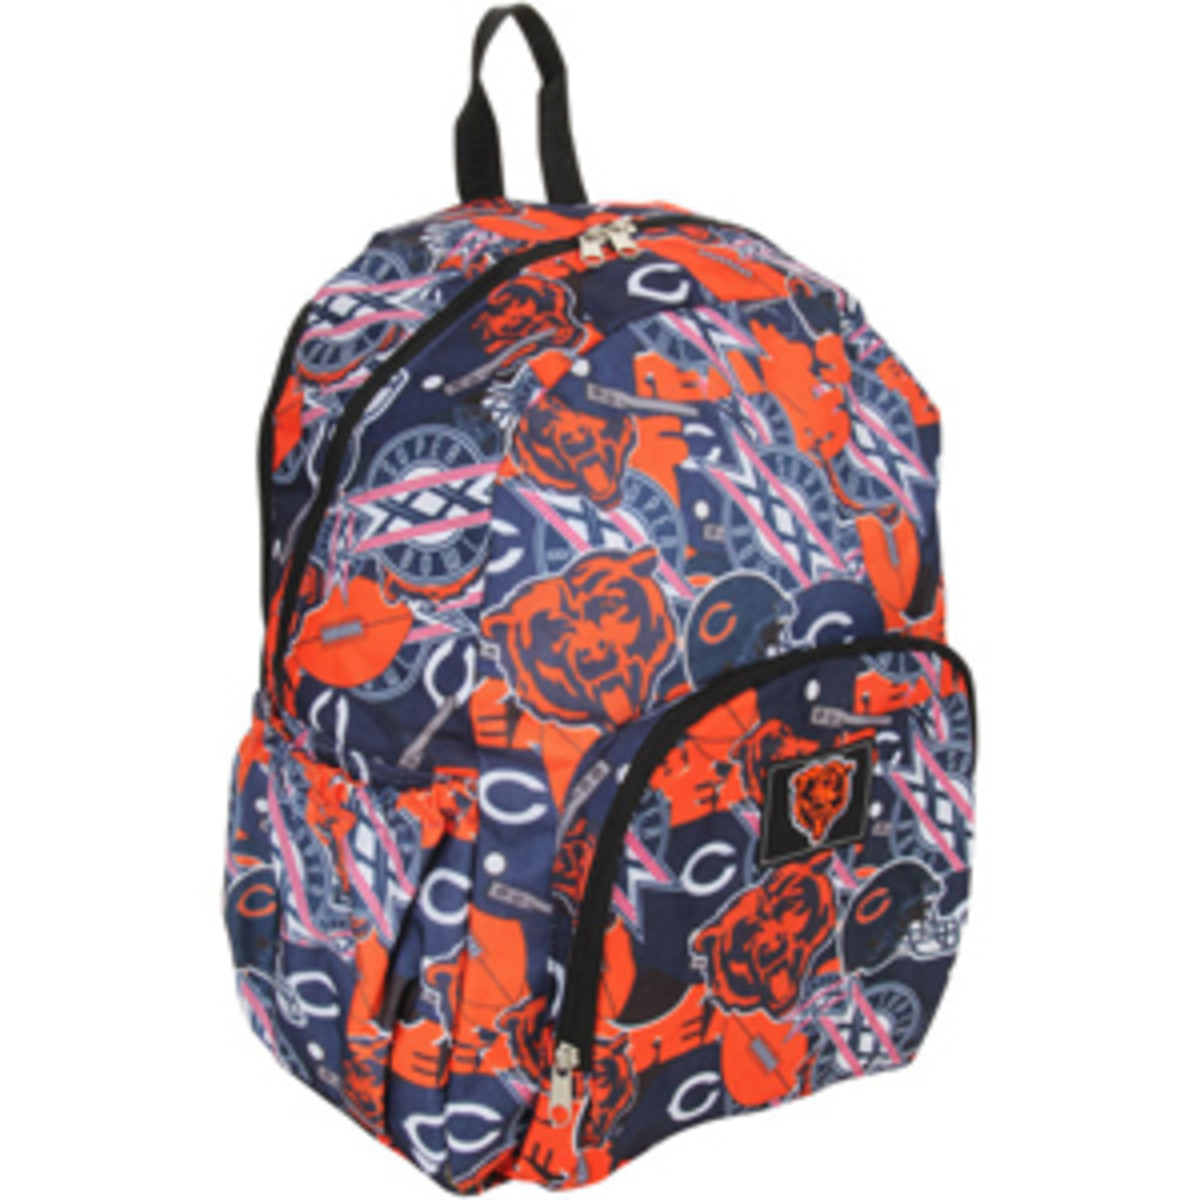 mmqb-bears-backpack.jpg